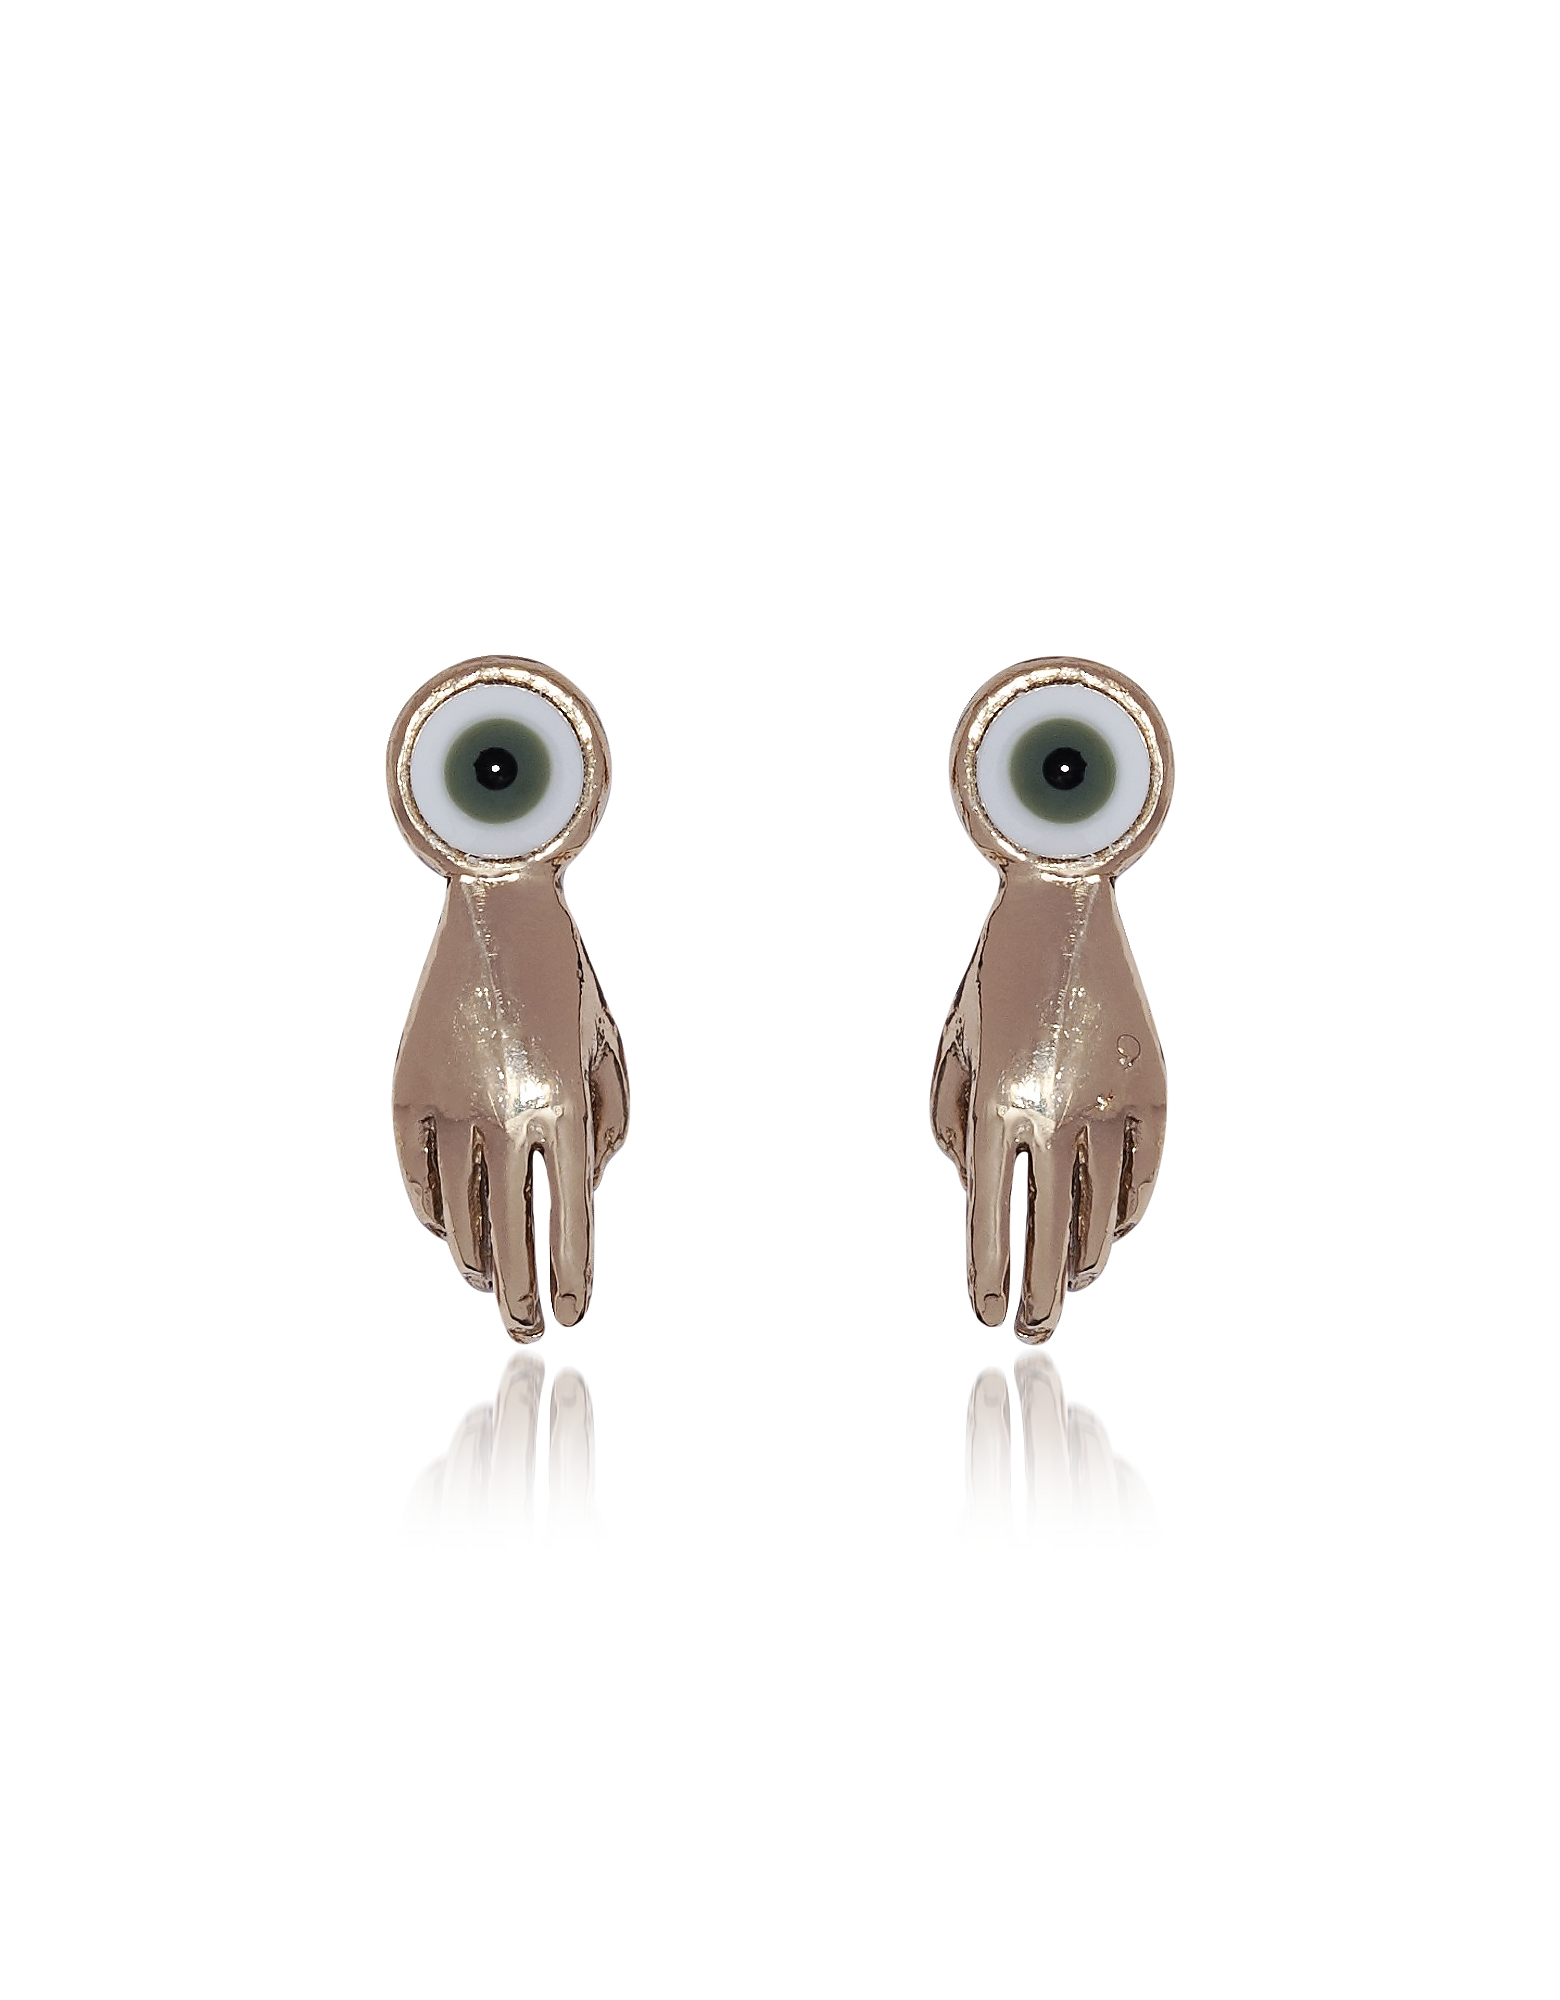 Small Bronze Hand Earrings w/ Green Eye